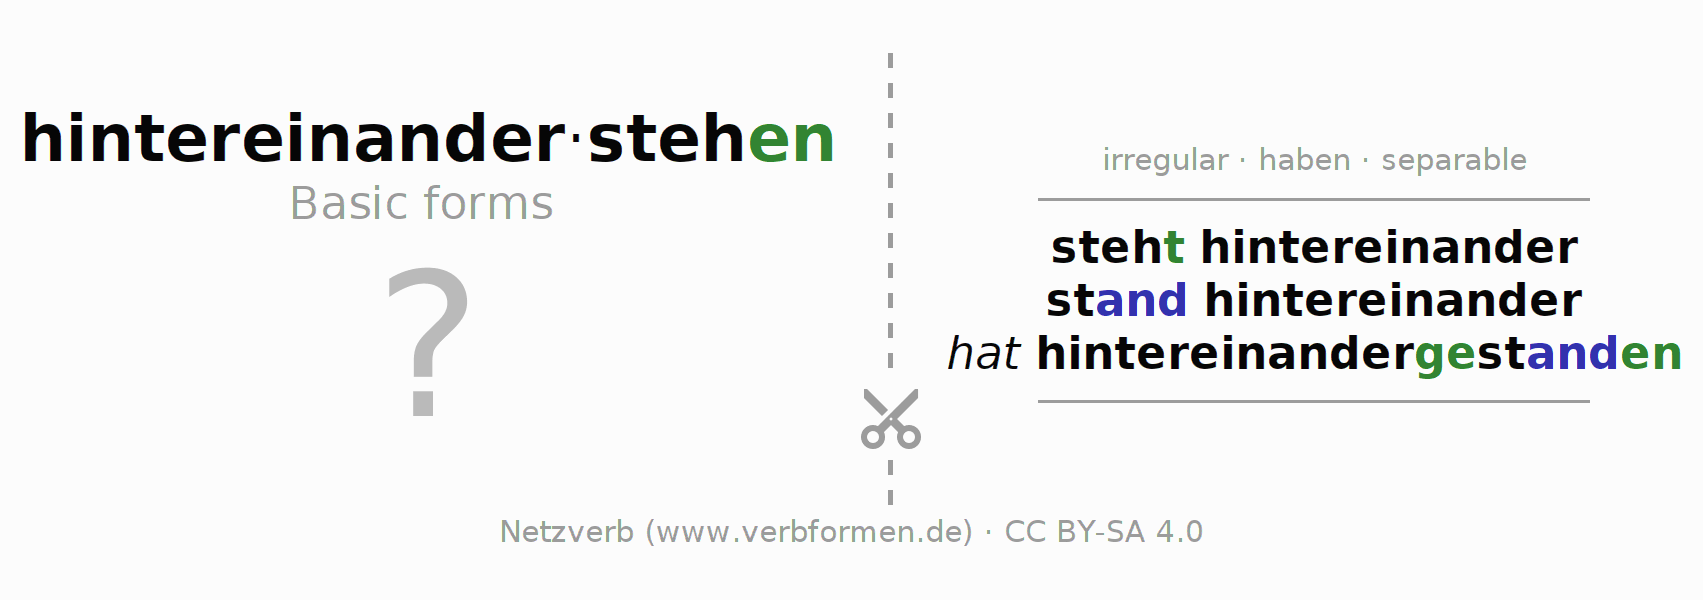 Flash cards for the conjugation of the verb hintereinanderstehen (hat)